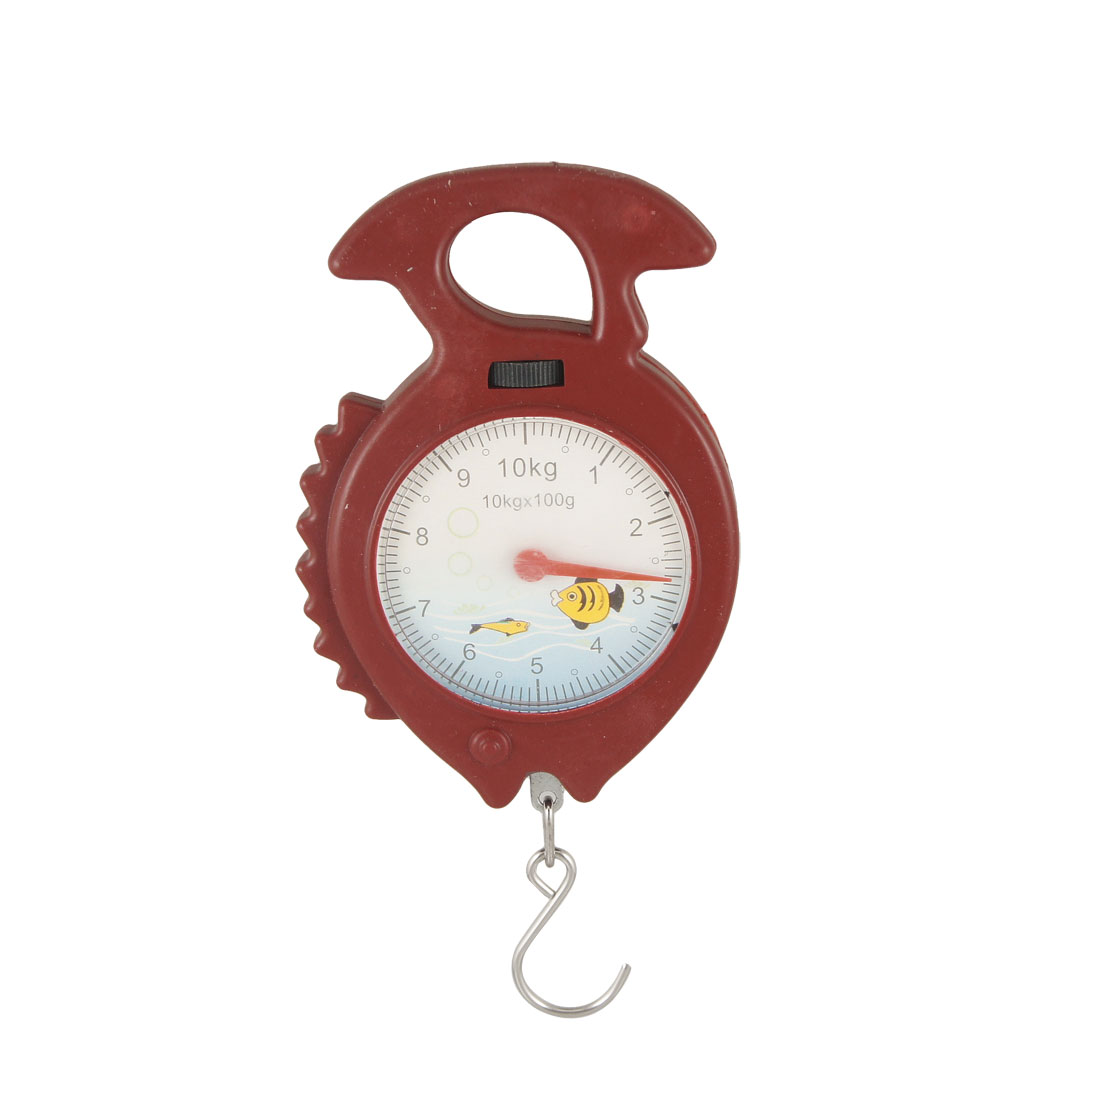 Red Plastic Fish Shaped Handheld Spring Scale Weigh Up 10Kg